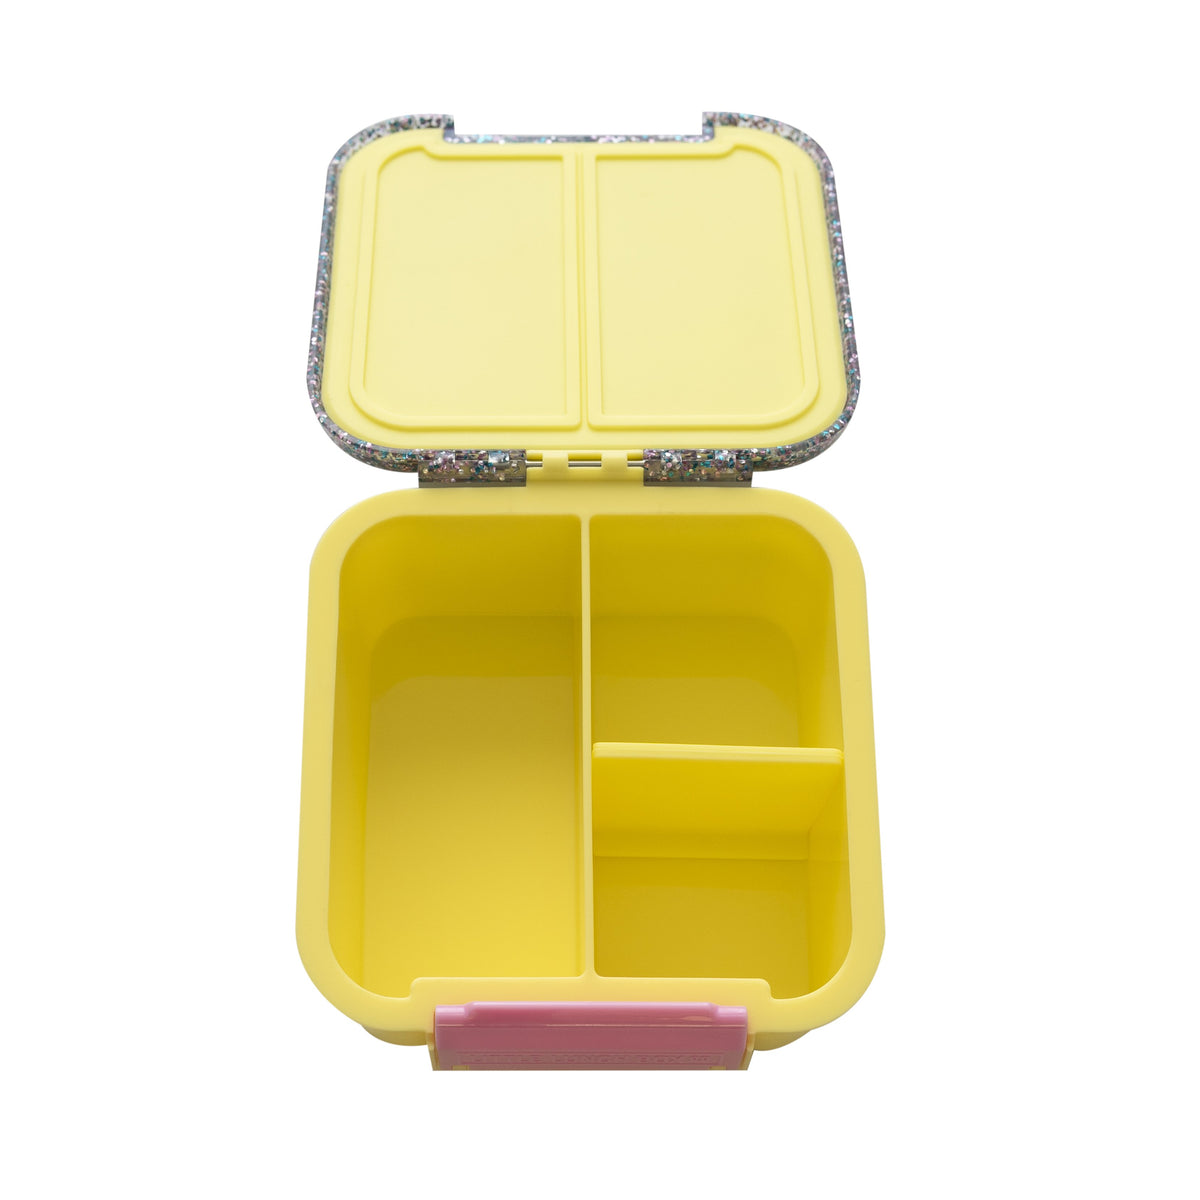 Little Lunch Box Co - Bento Three - Yellow Glitter